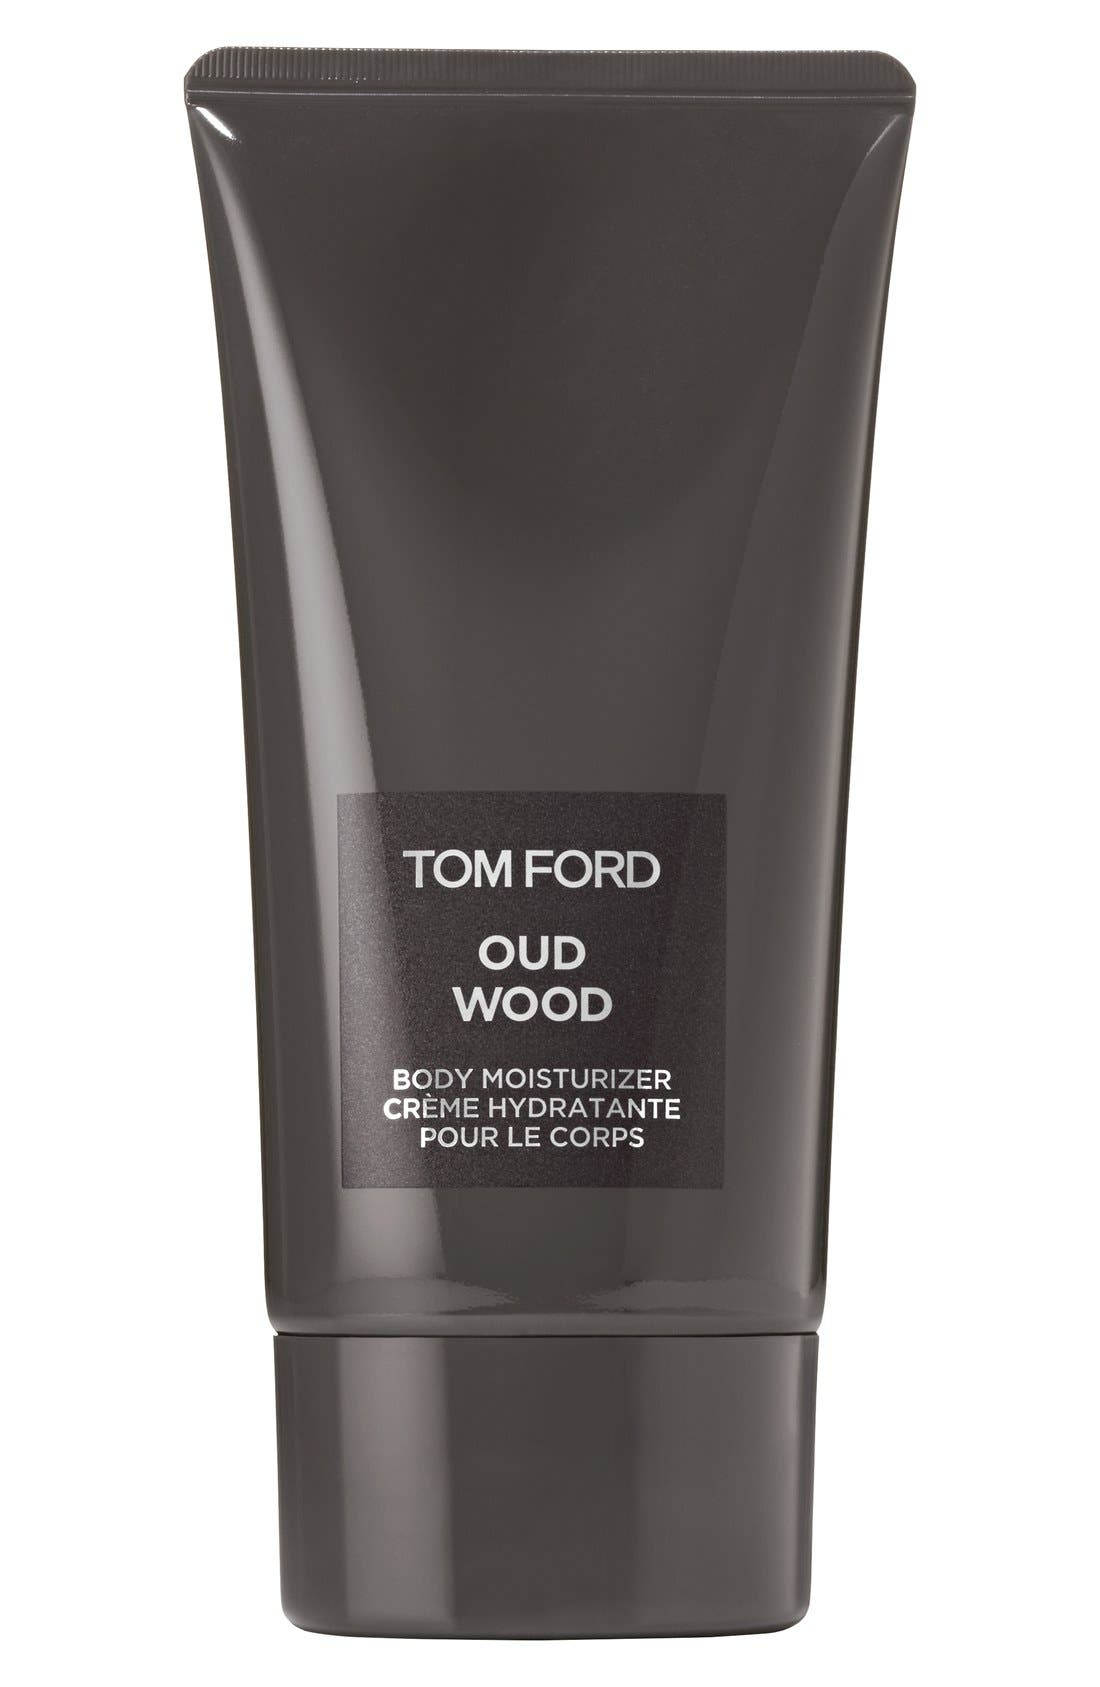 Tom Ford 'Oud Wood' Body Moisturizer